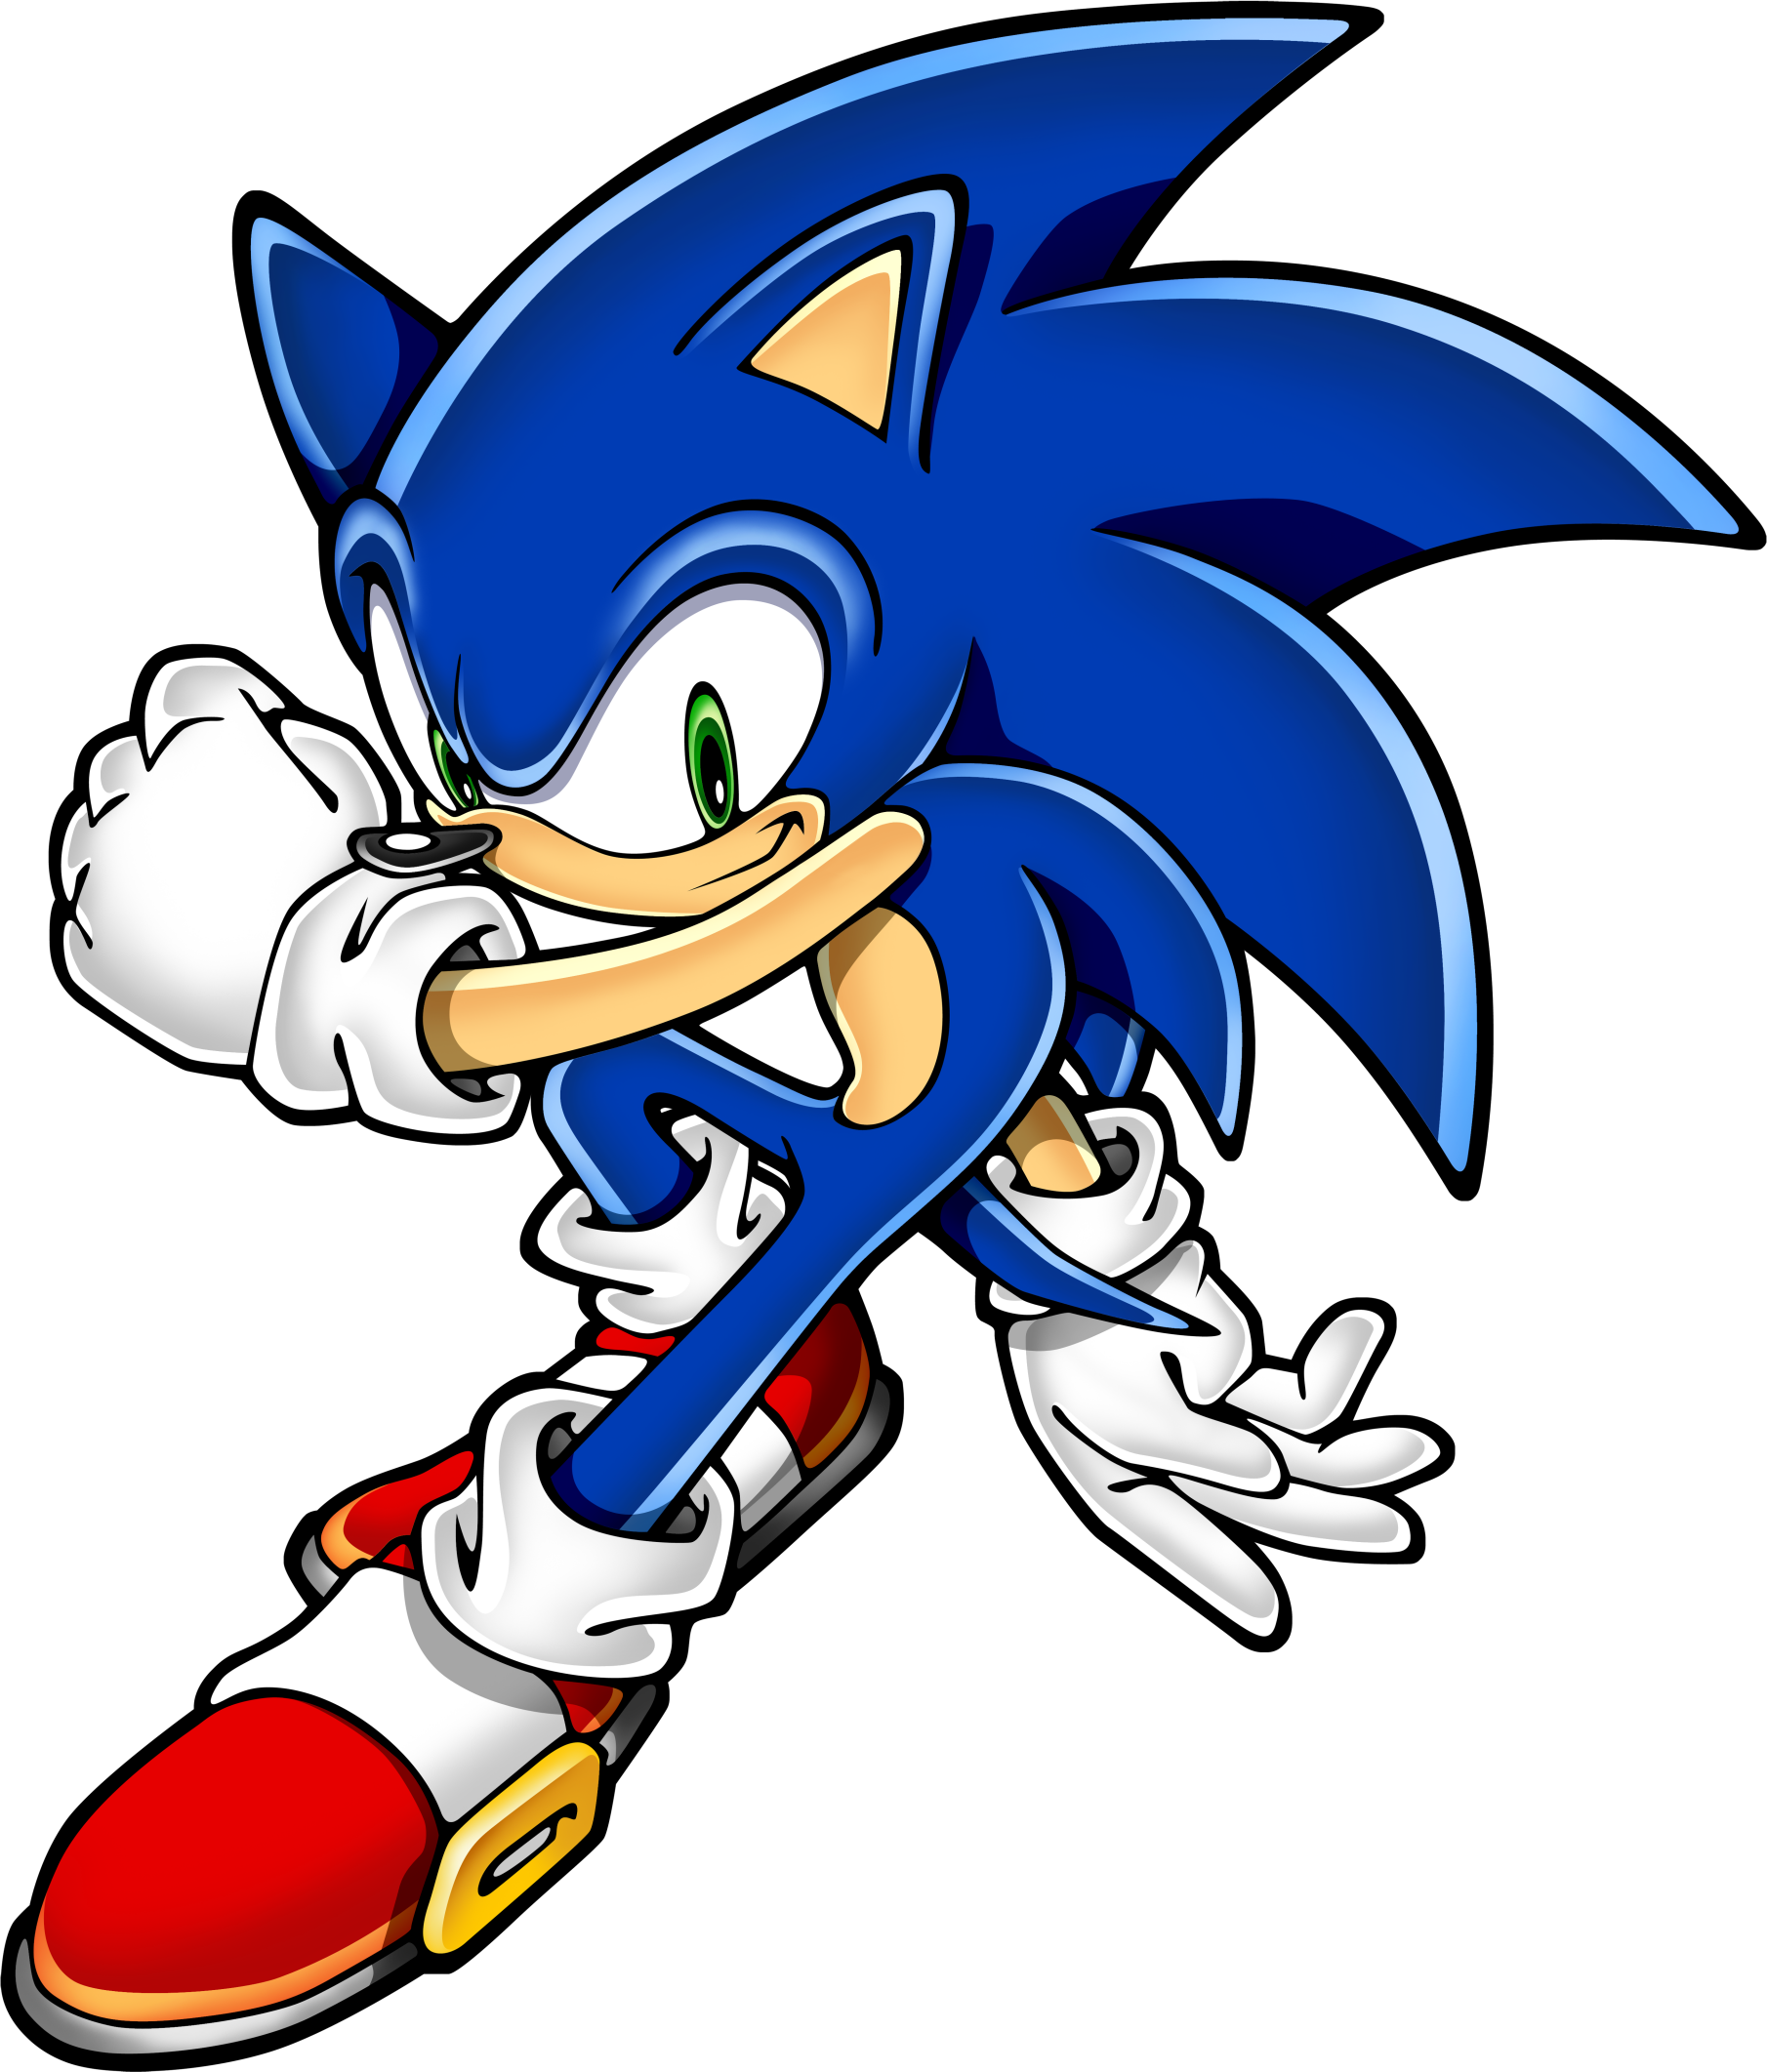 20 Free Printable Sonic the Hedgehog Coloring